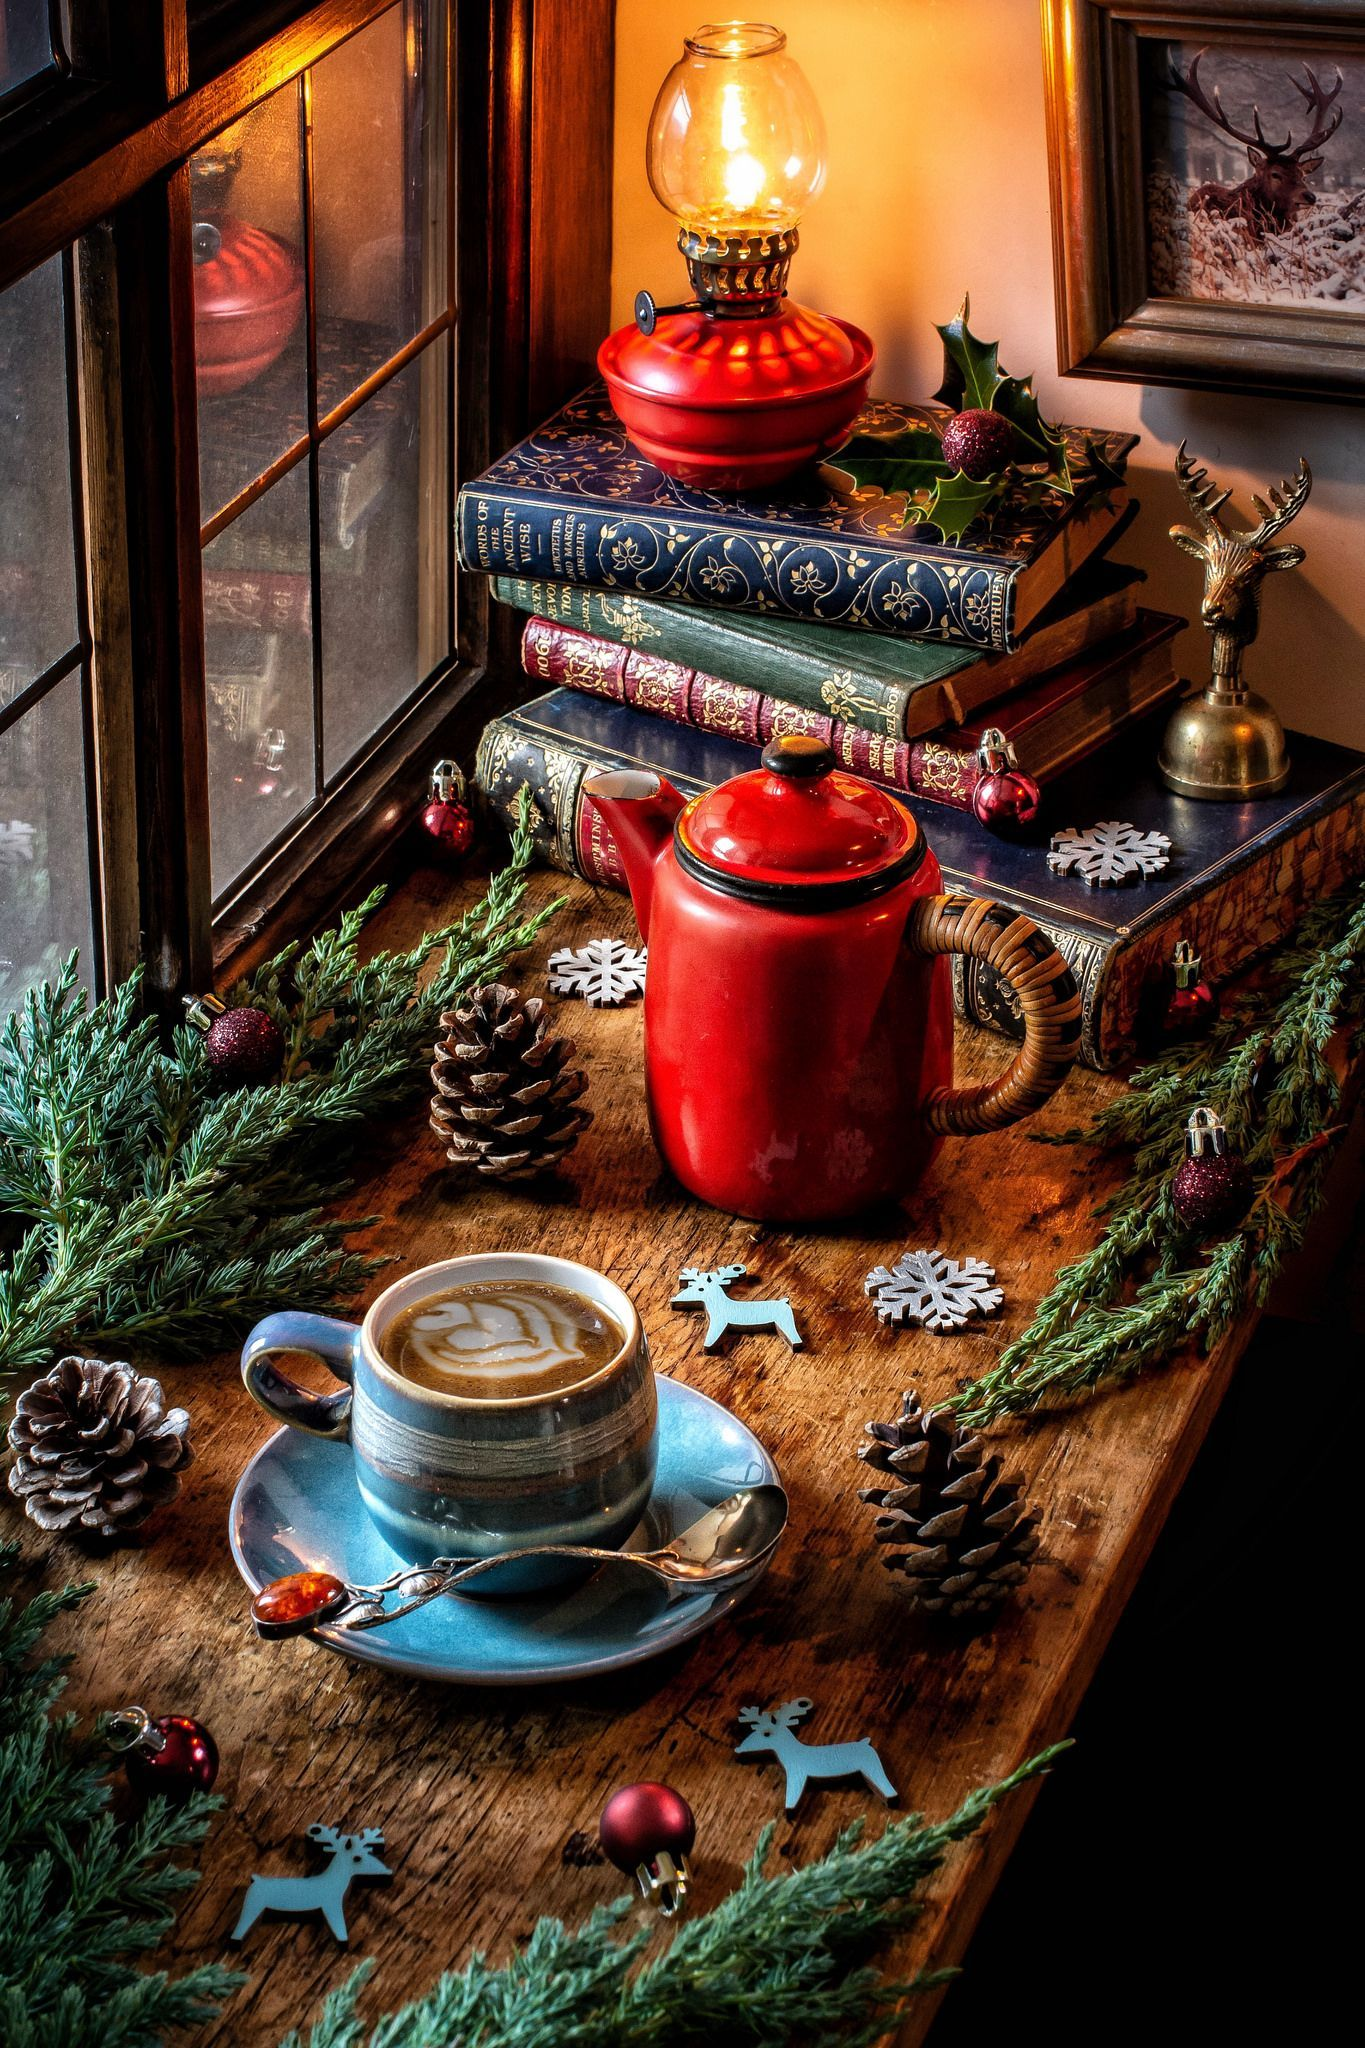 A Winter Evening Cozywinter Evening Winter In 2020 Cozy Christmas Christmas Aesthetic Vintage Christmas